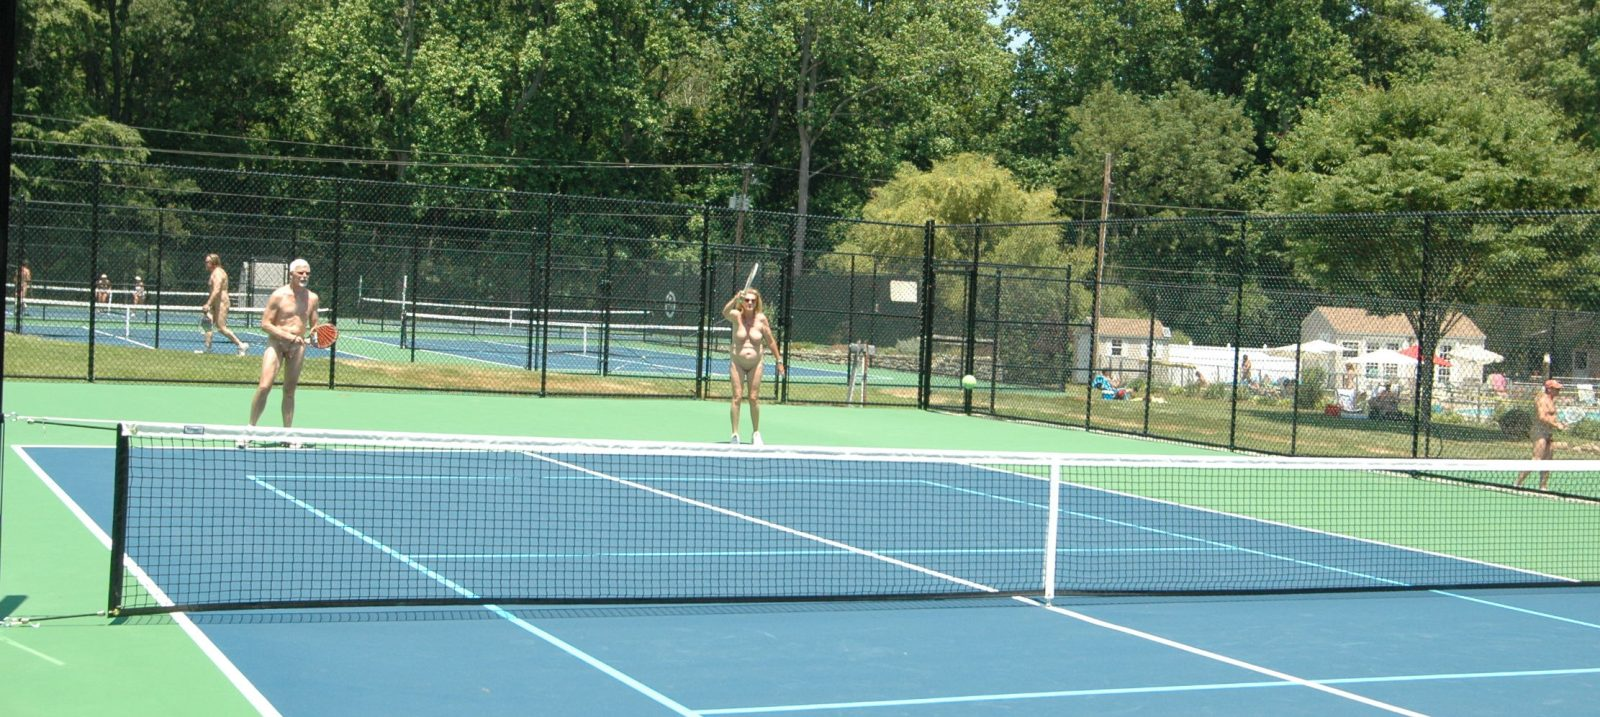 Sports: The tennis courts at Pine Tree.